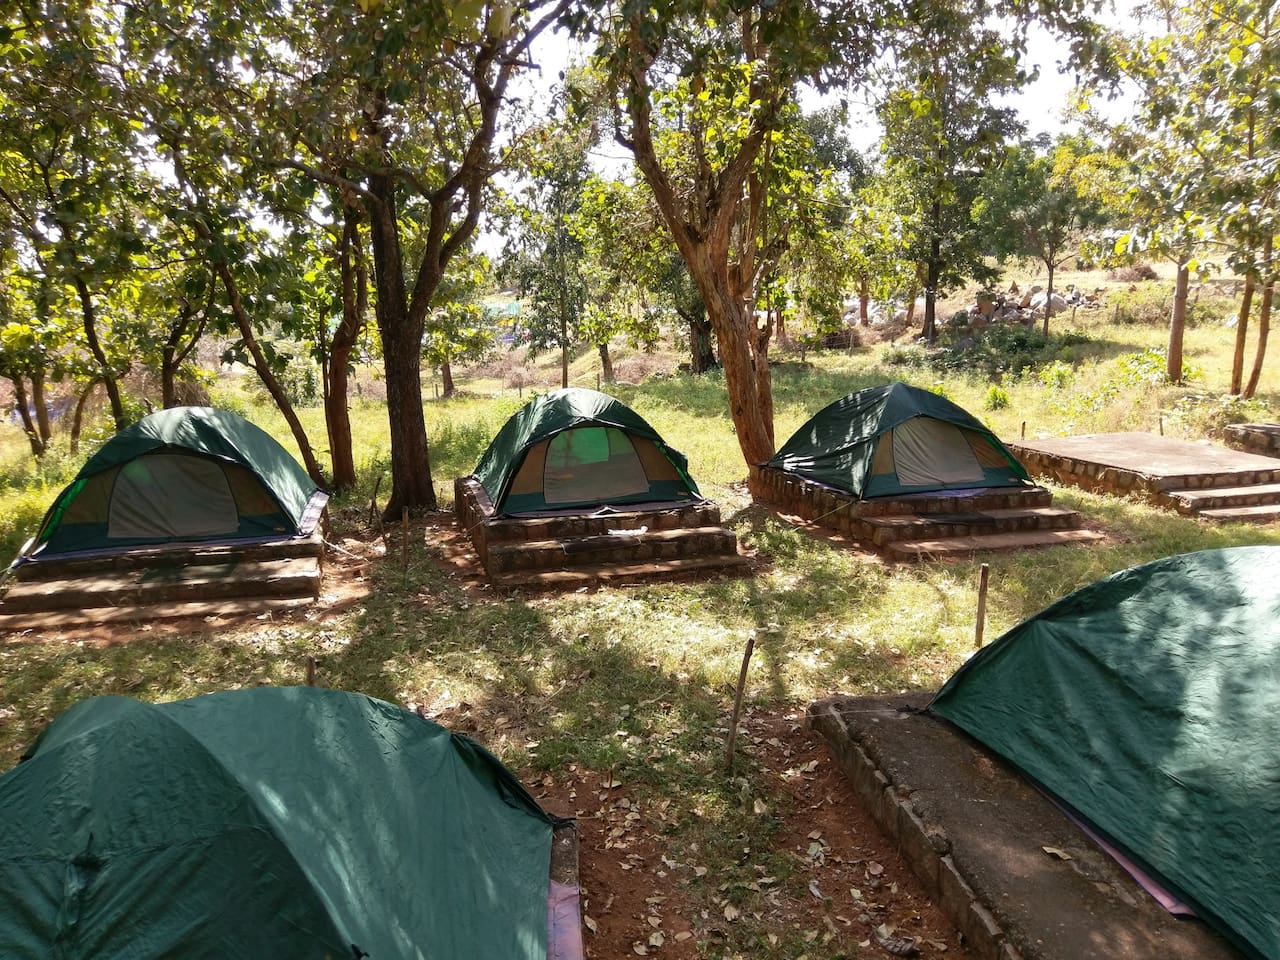 View of tents on raised plinths